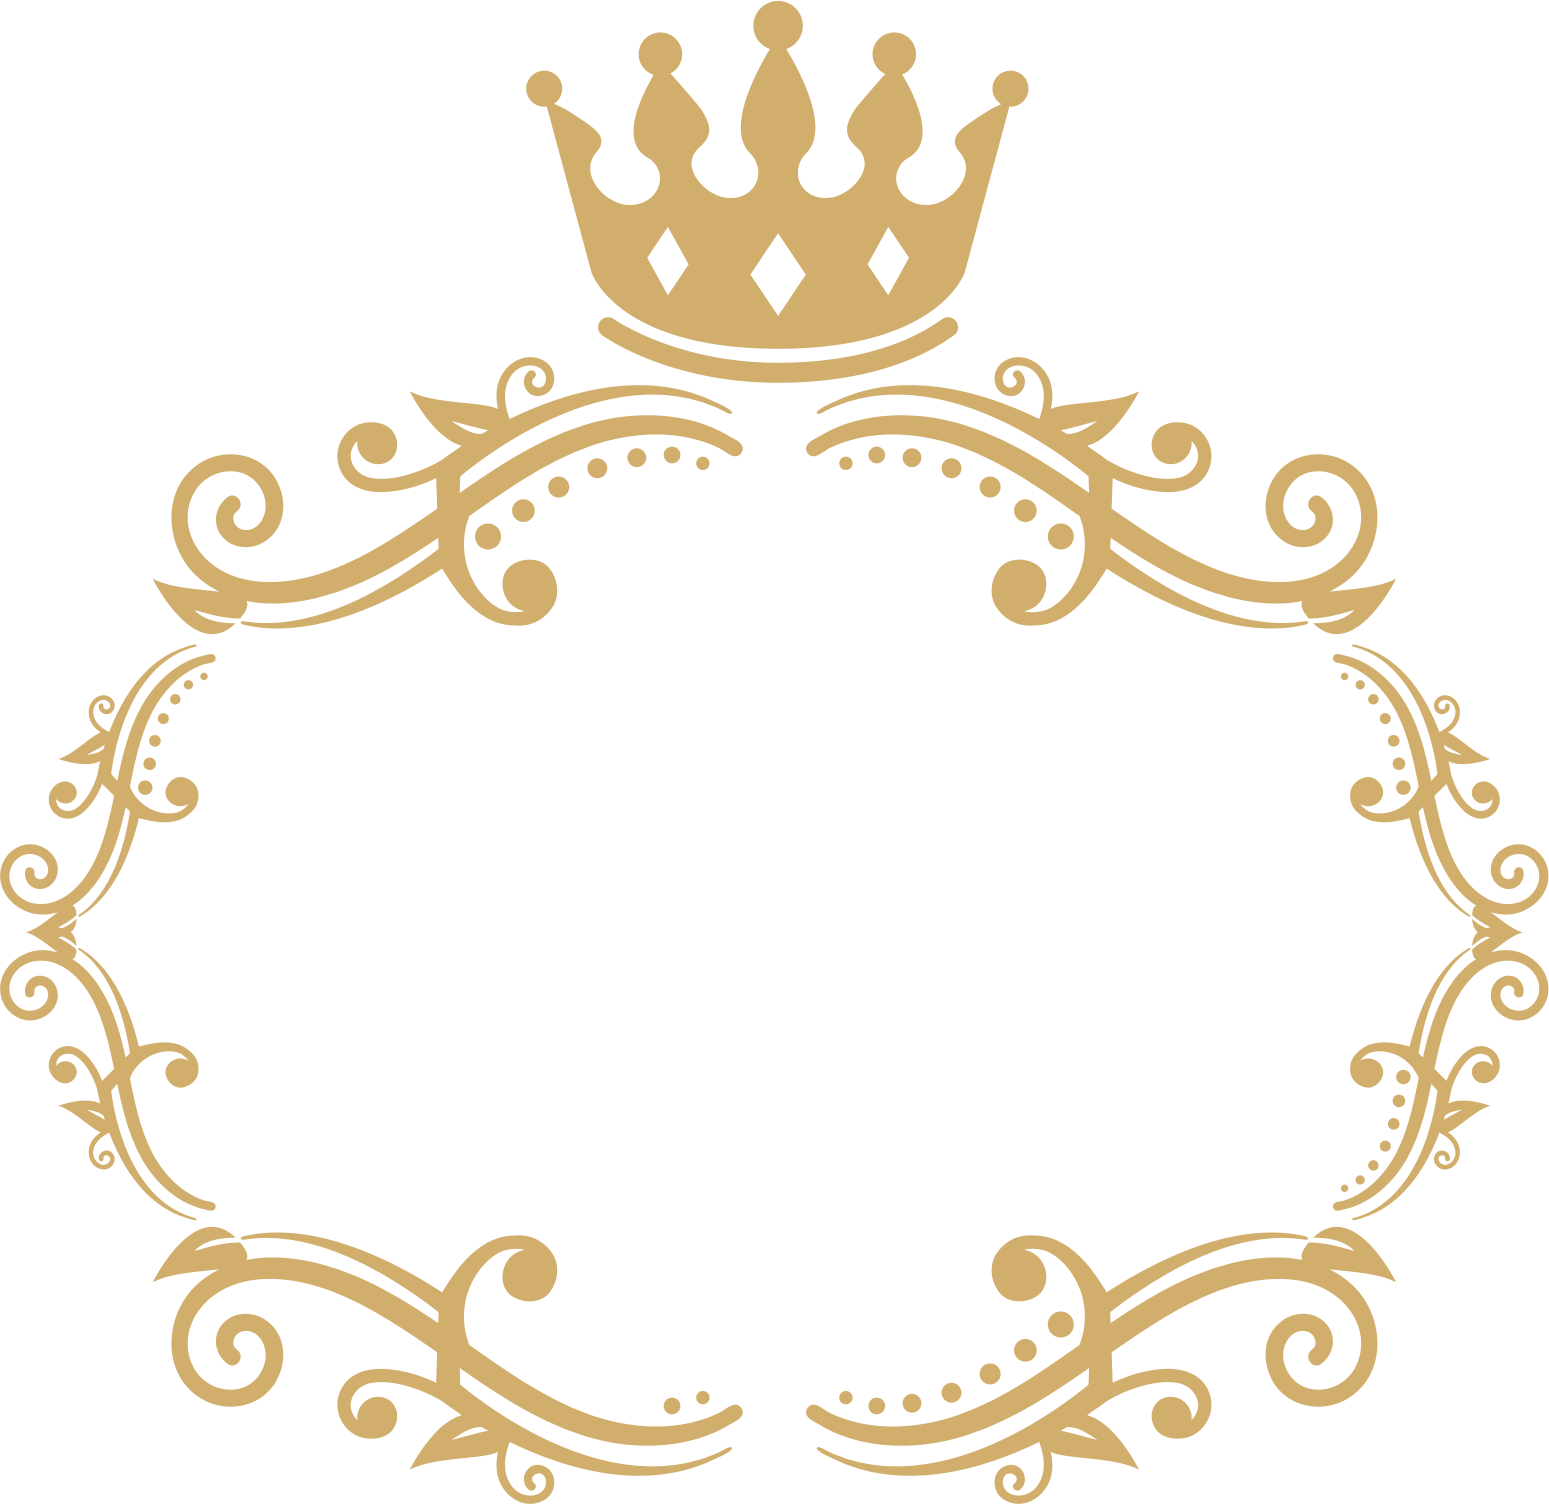 Crown monogram circle border clipart